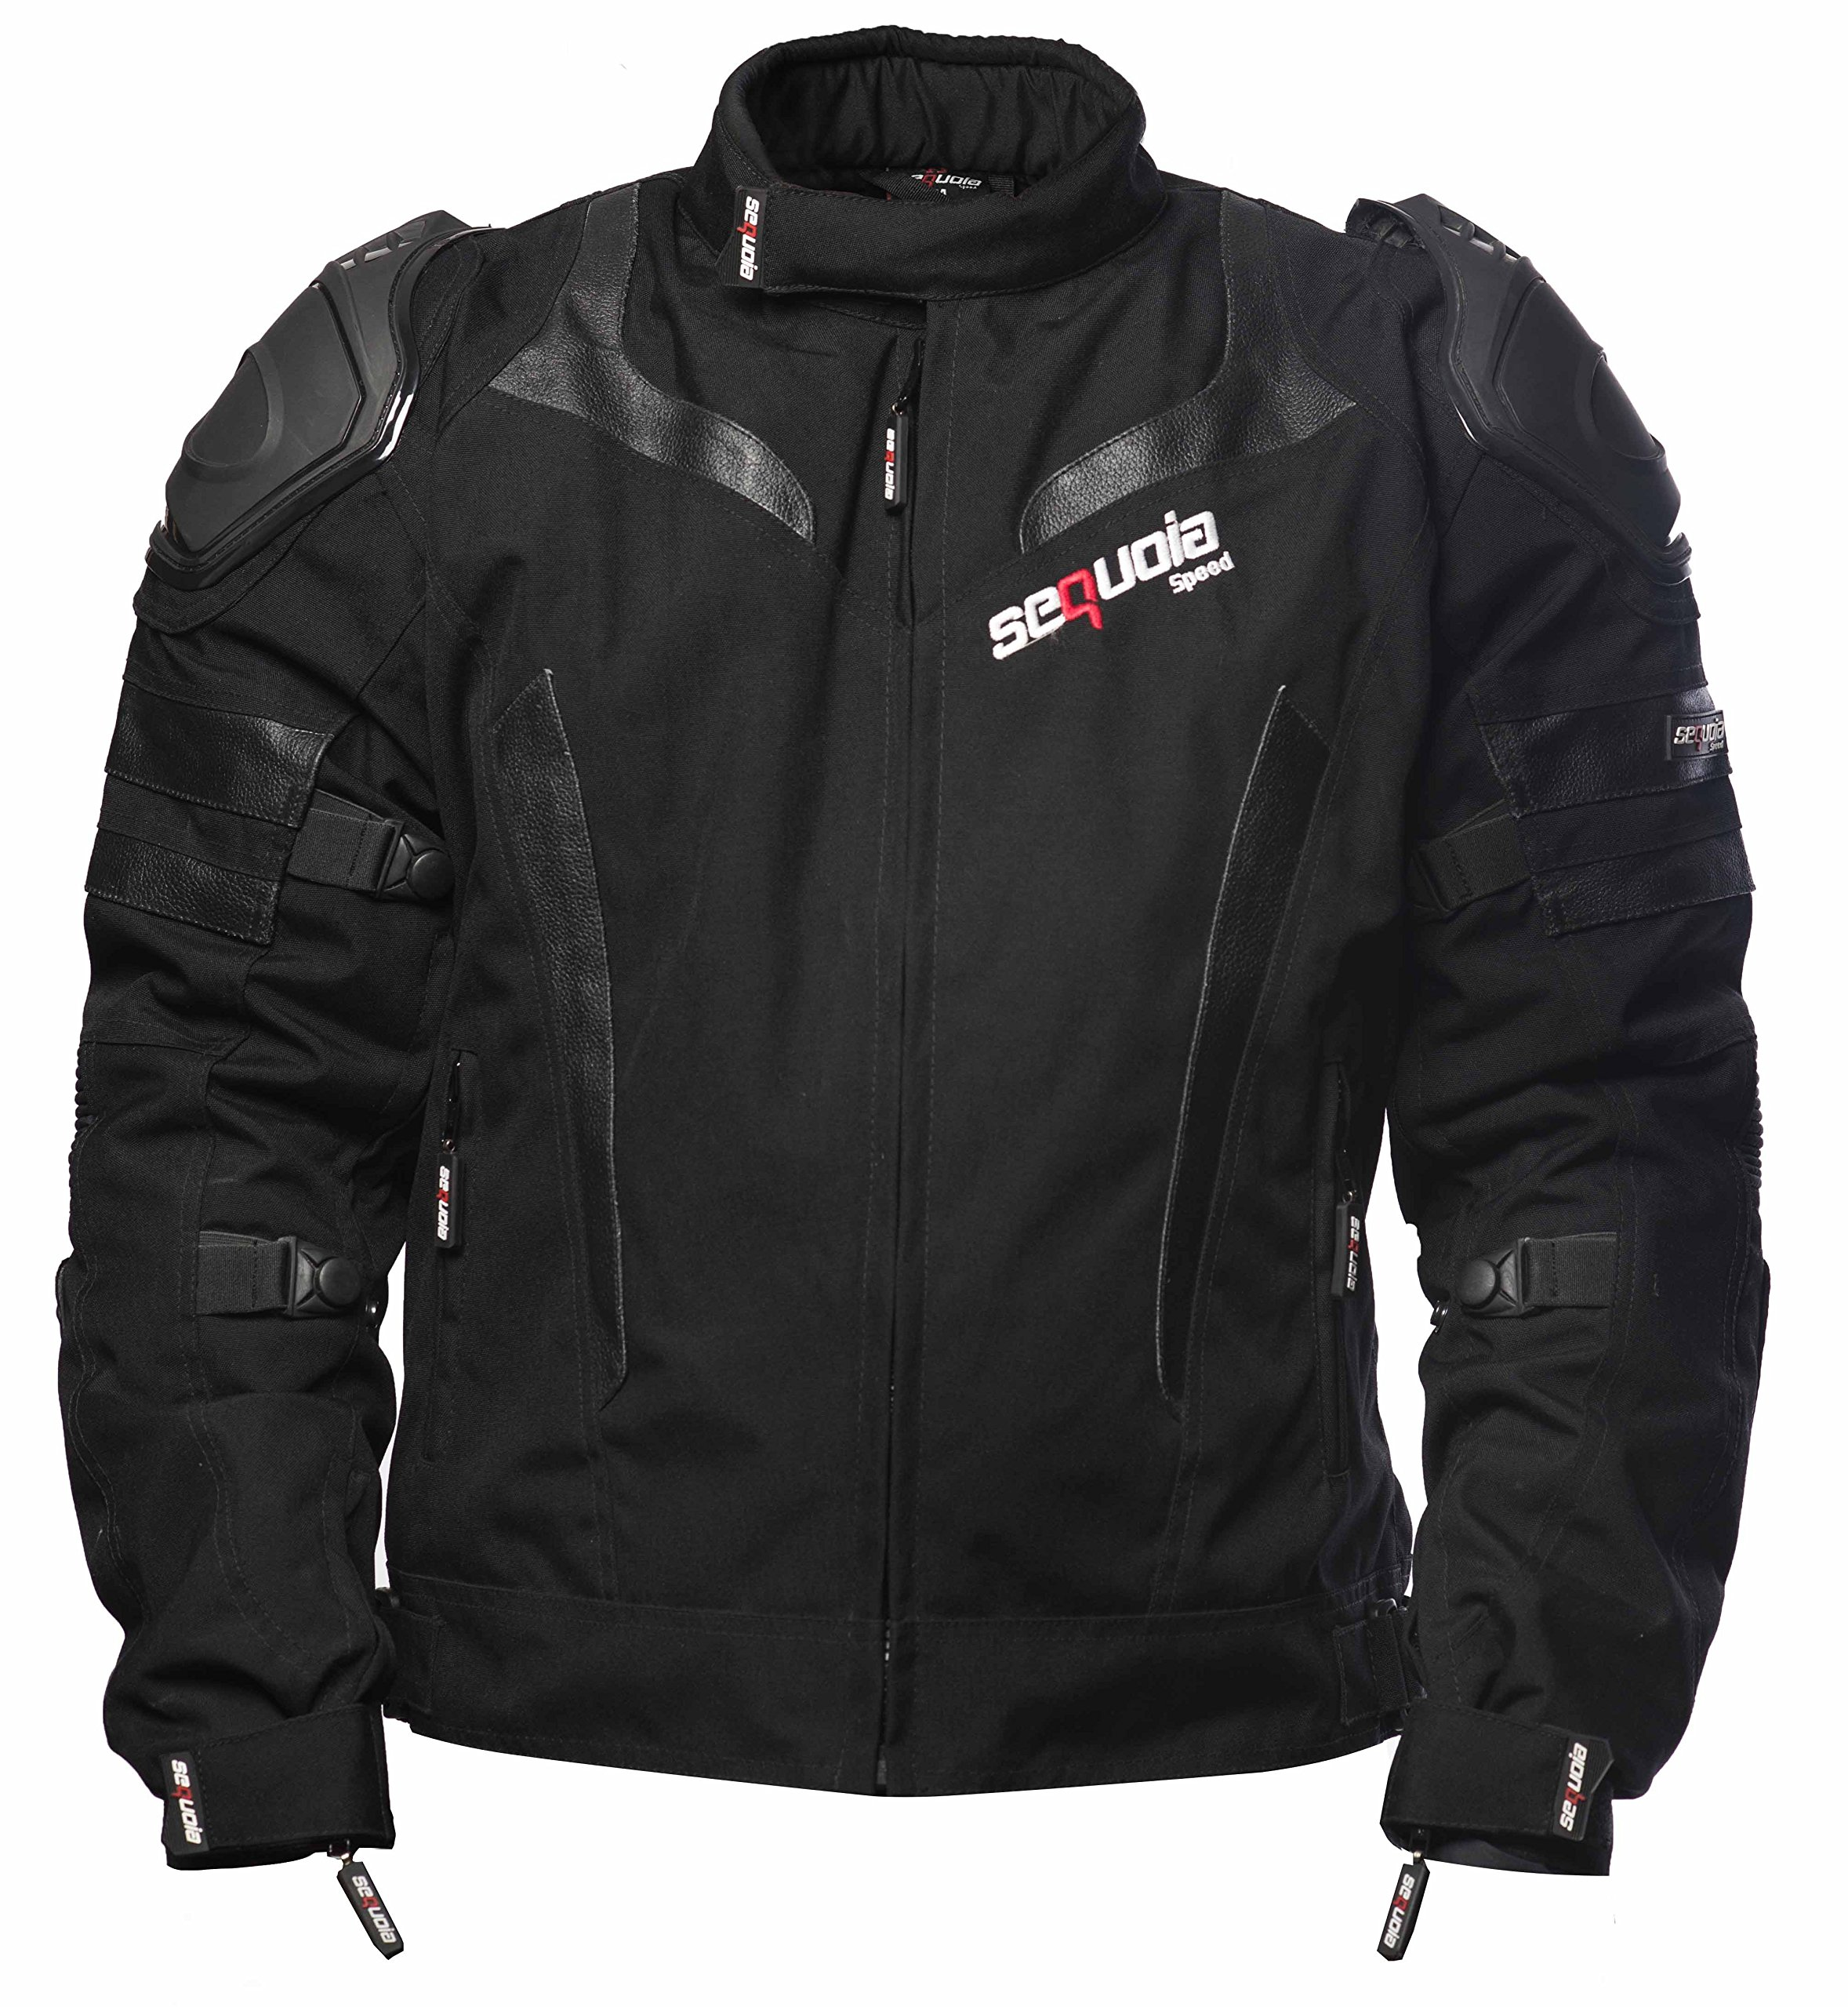 Sequoia Speed SR2030 Jacket Armor Motorcycle Body Gear Chest Black Full Protection Spine Protective Shoulder Men Racing Bike Motocross New S Guard Riding Powersports - Size 3XL - 3 Months Warranty